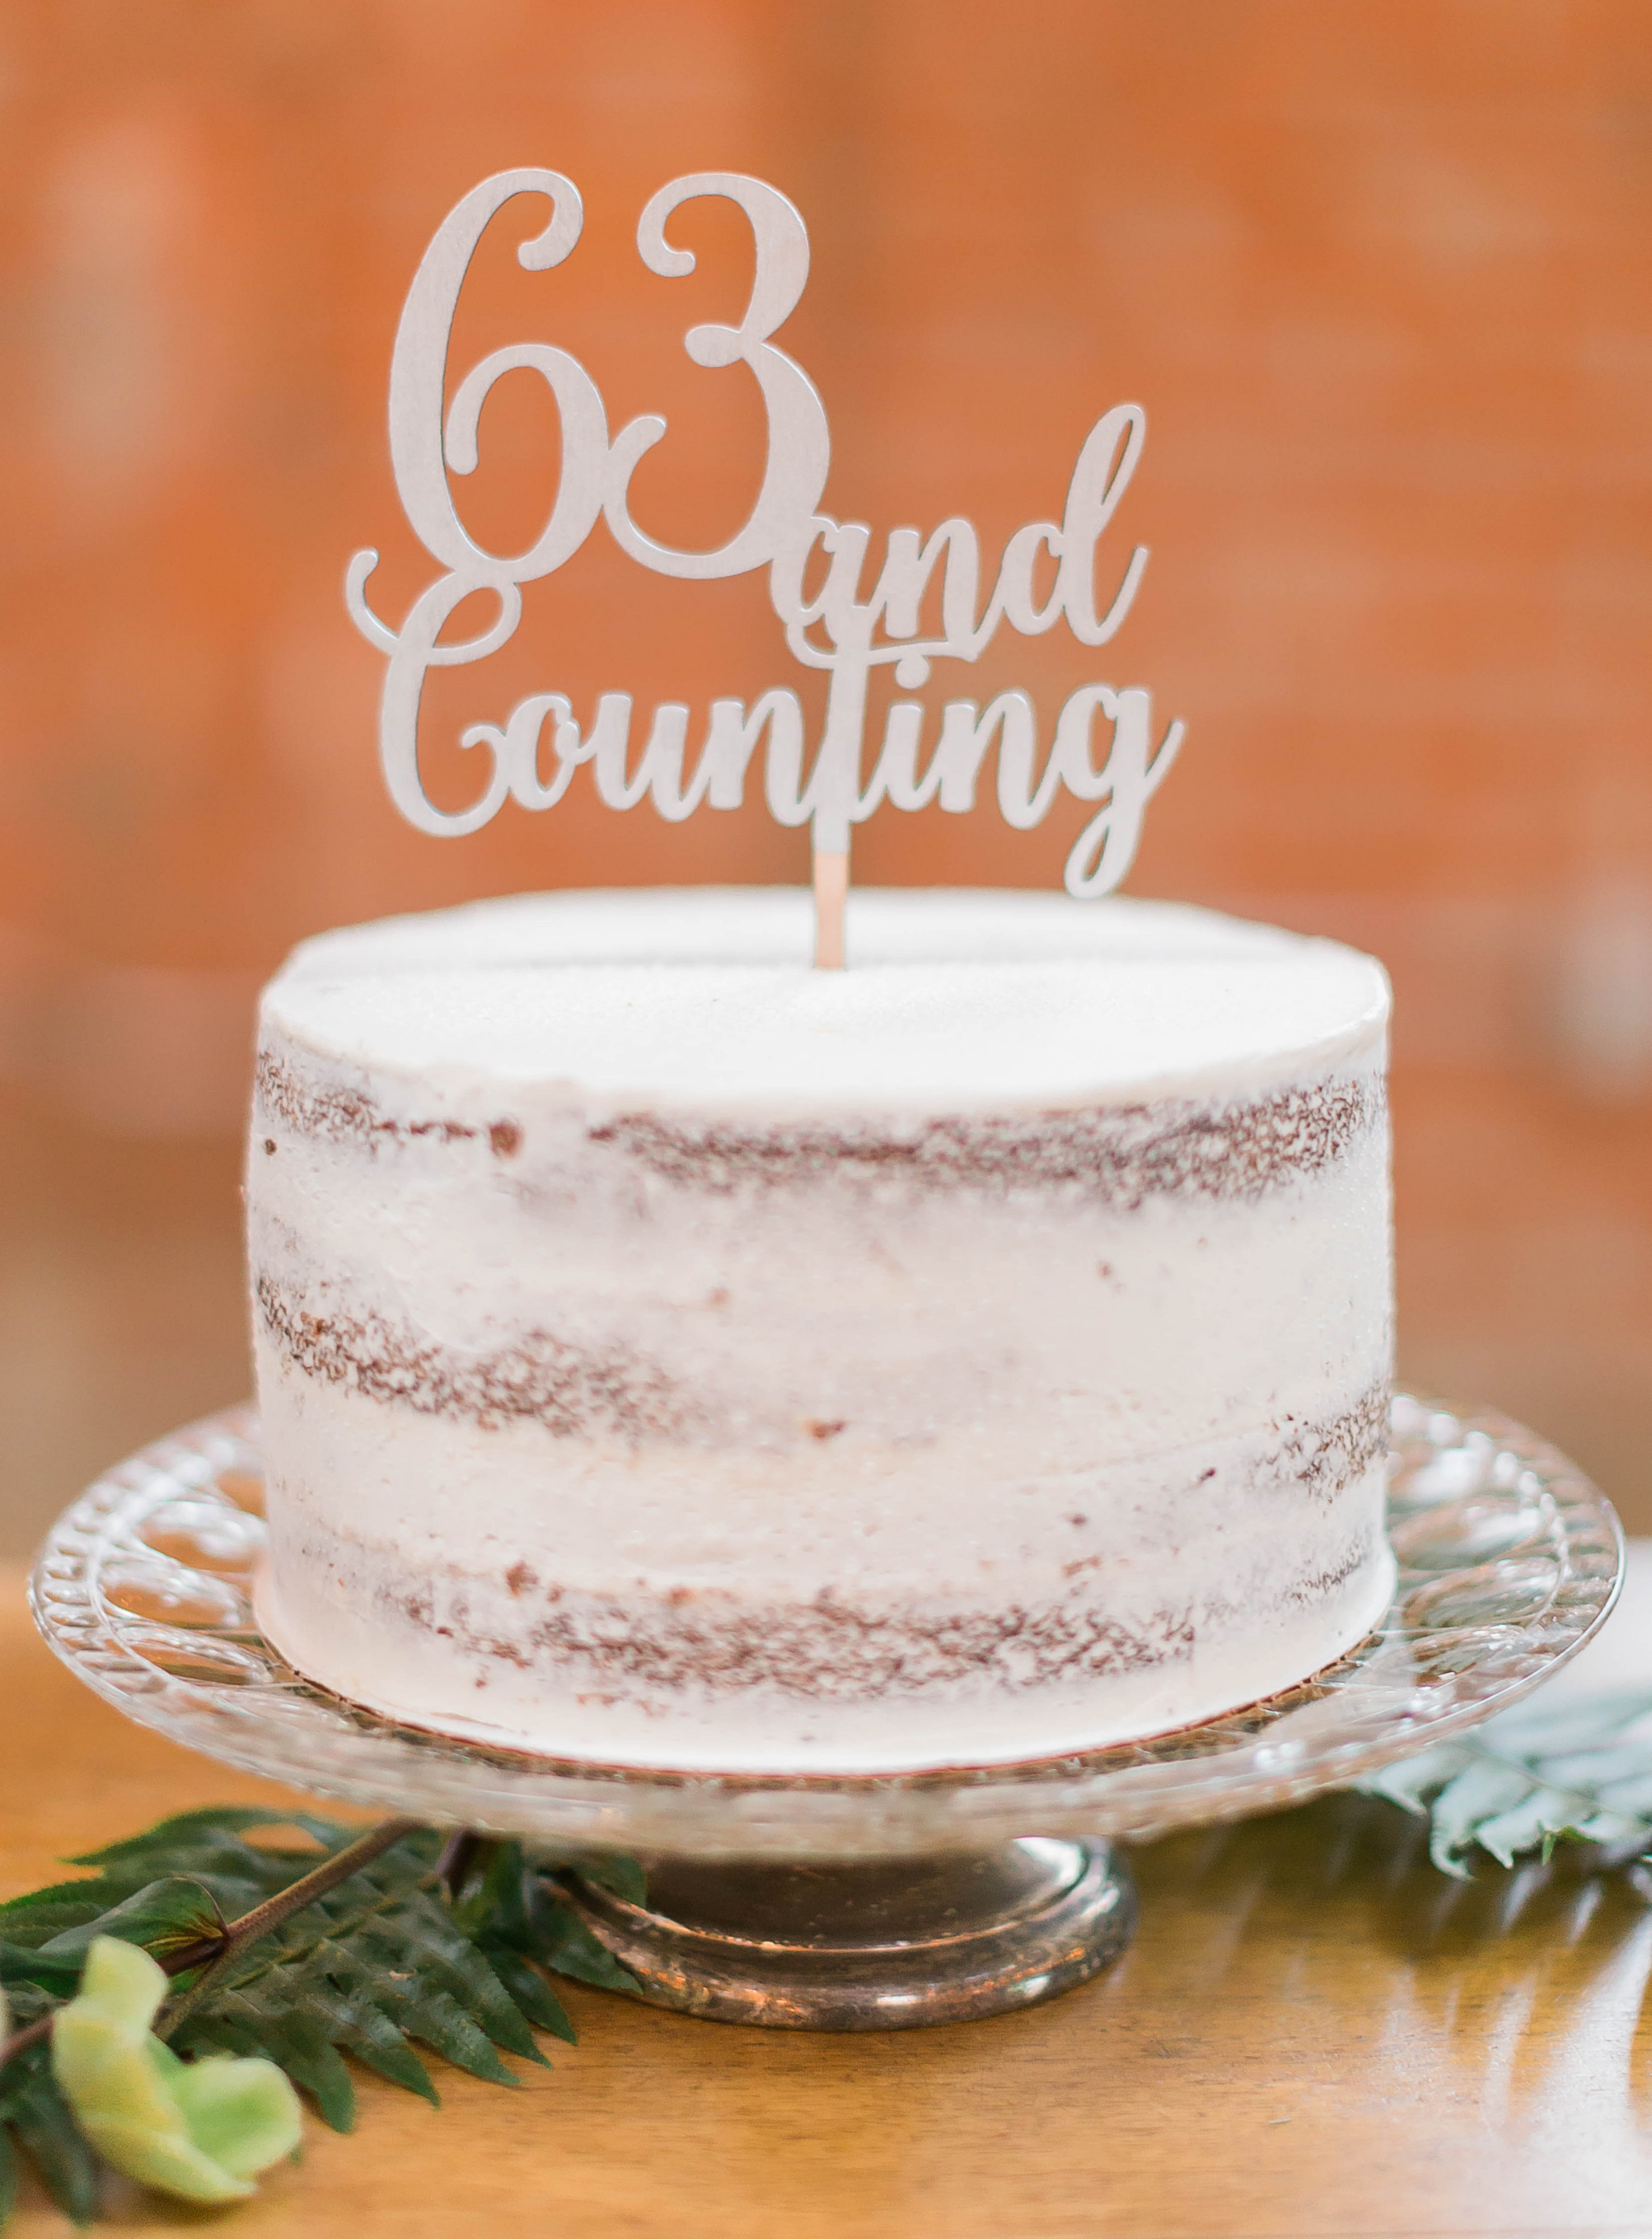 meadows events | wedding anniversary cake